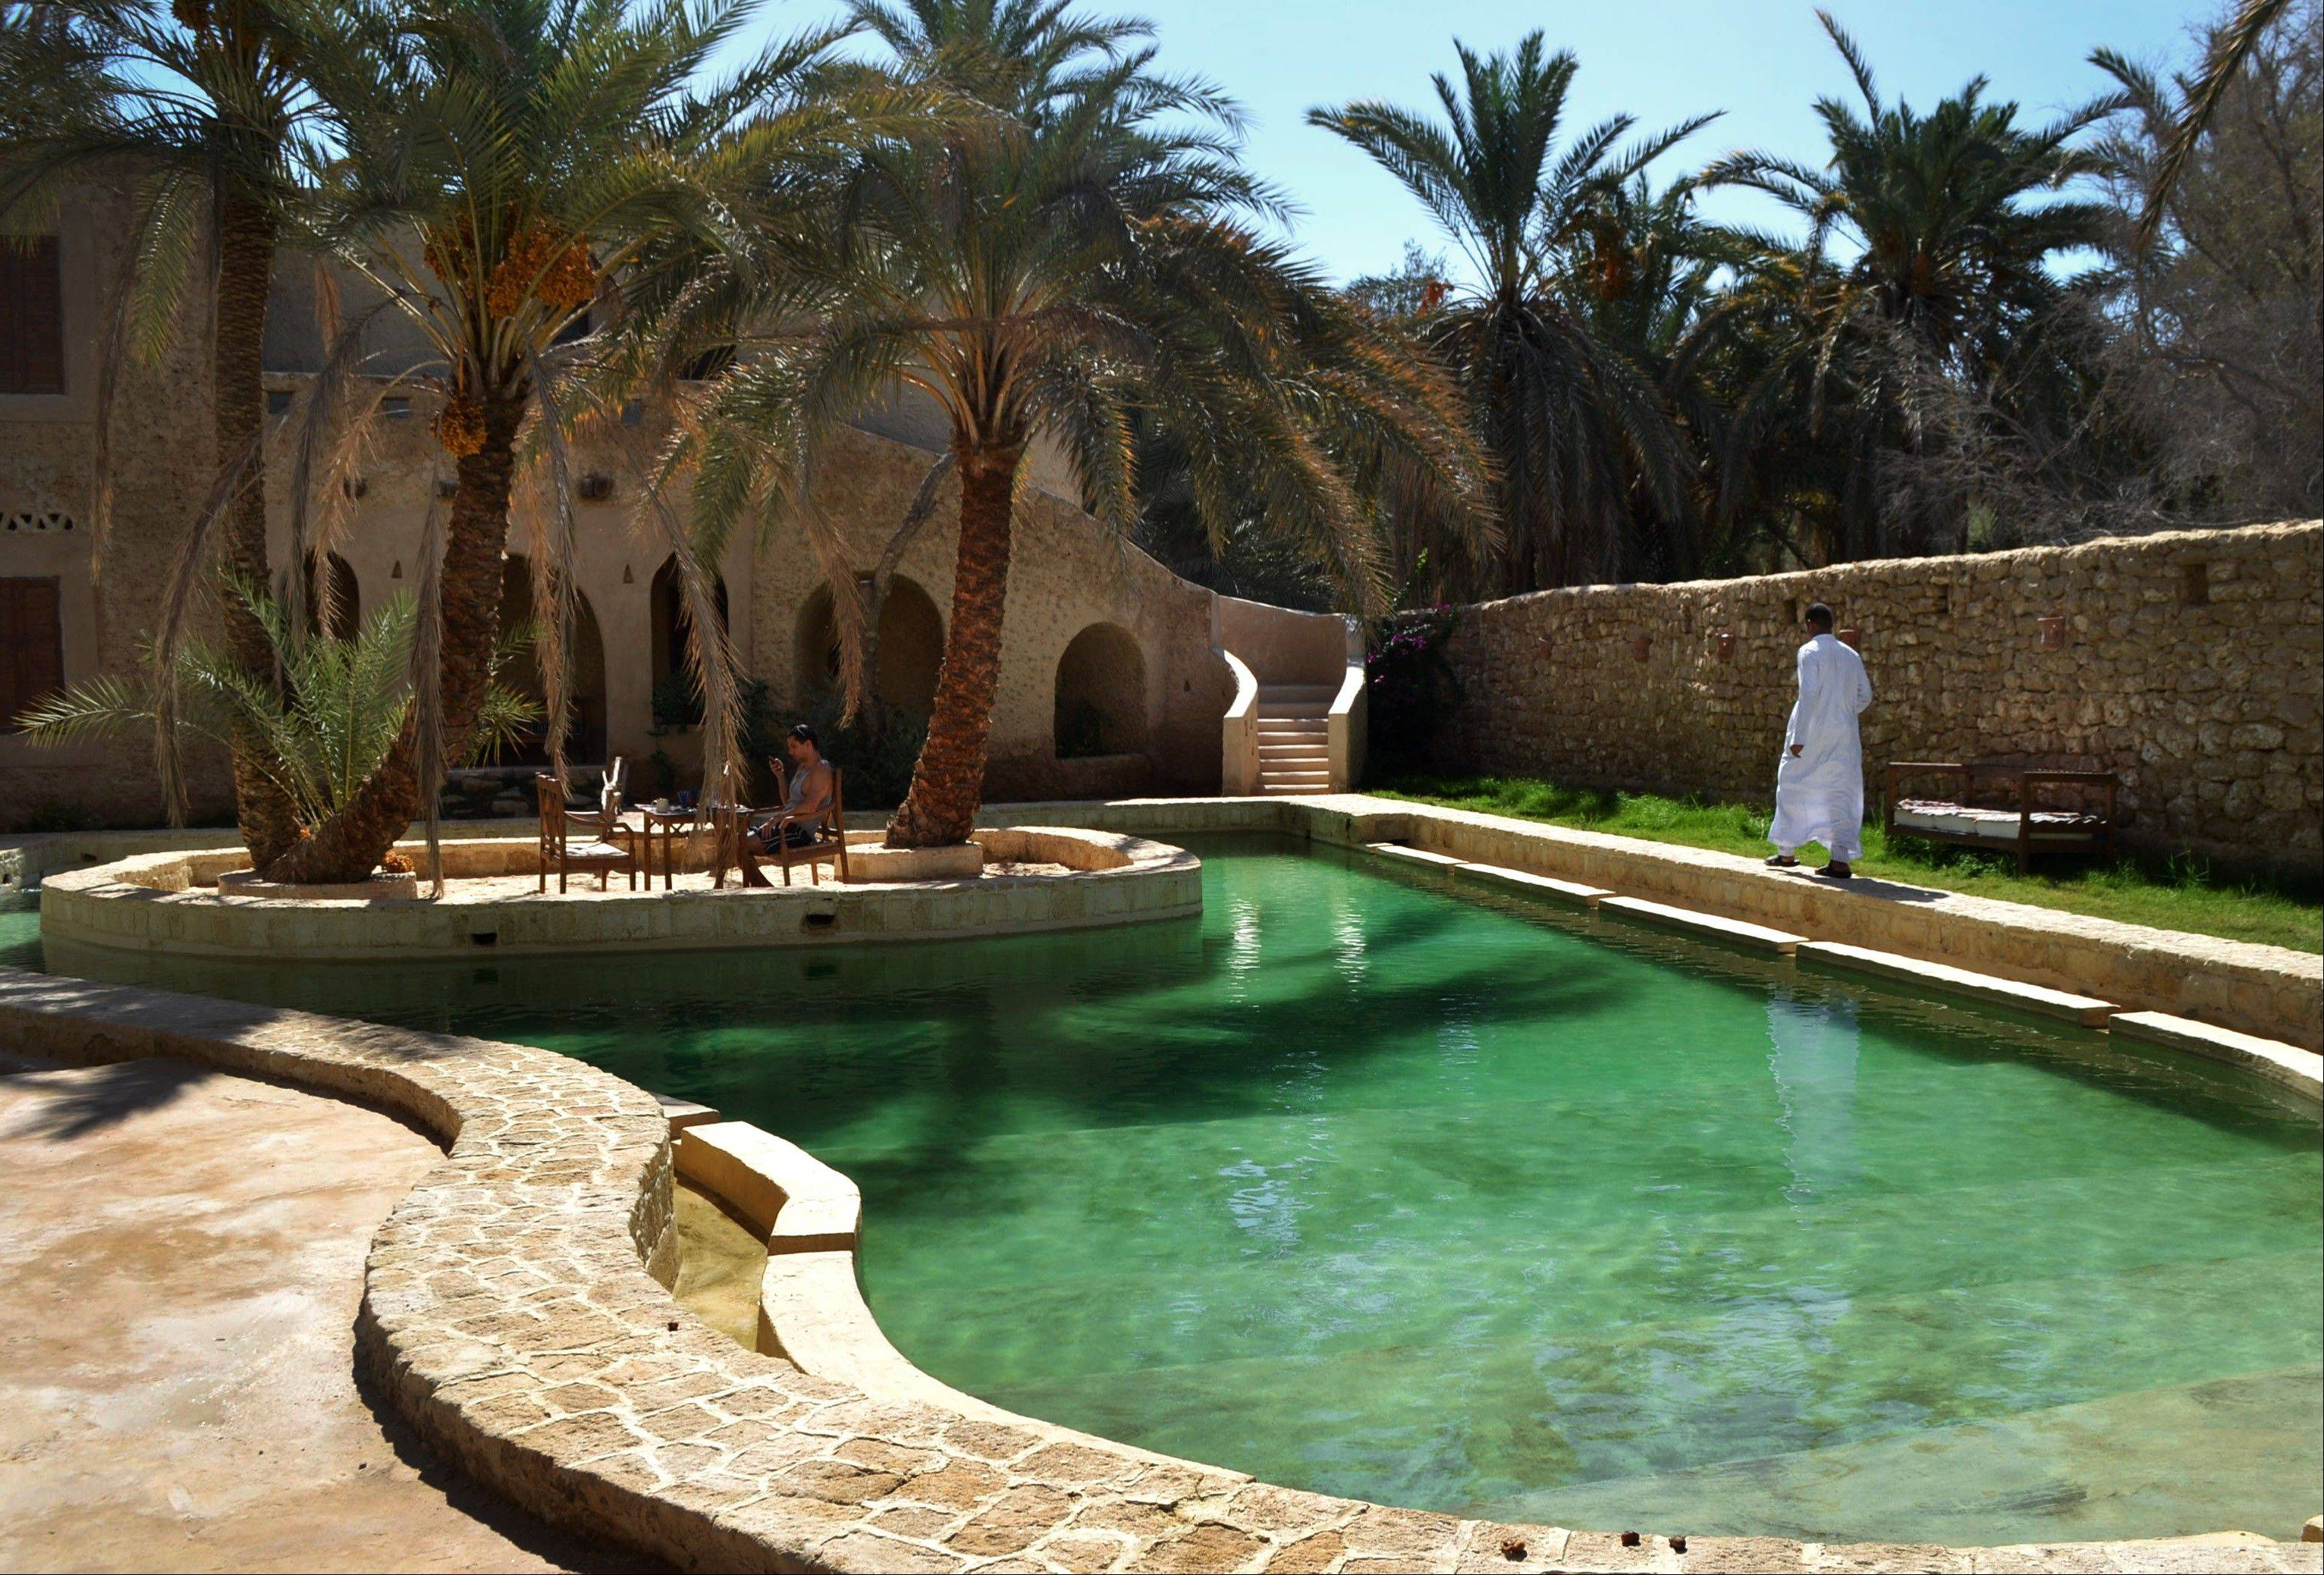 A freshwater pool at the Ghaliet Ecolodge and Spa in the Egyptian oasis of Siwa. The palm tree-lined area is known for its quiet charm, ancient ruins, natural springs, a vast salt lake and rolling sand dunes.